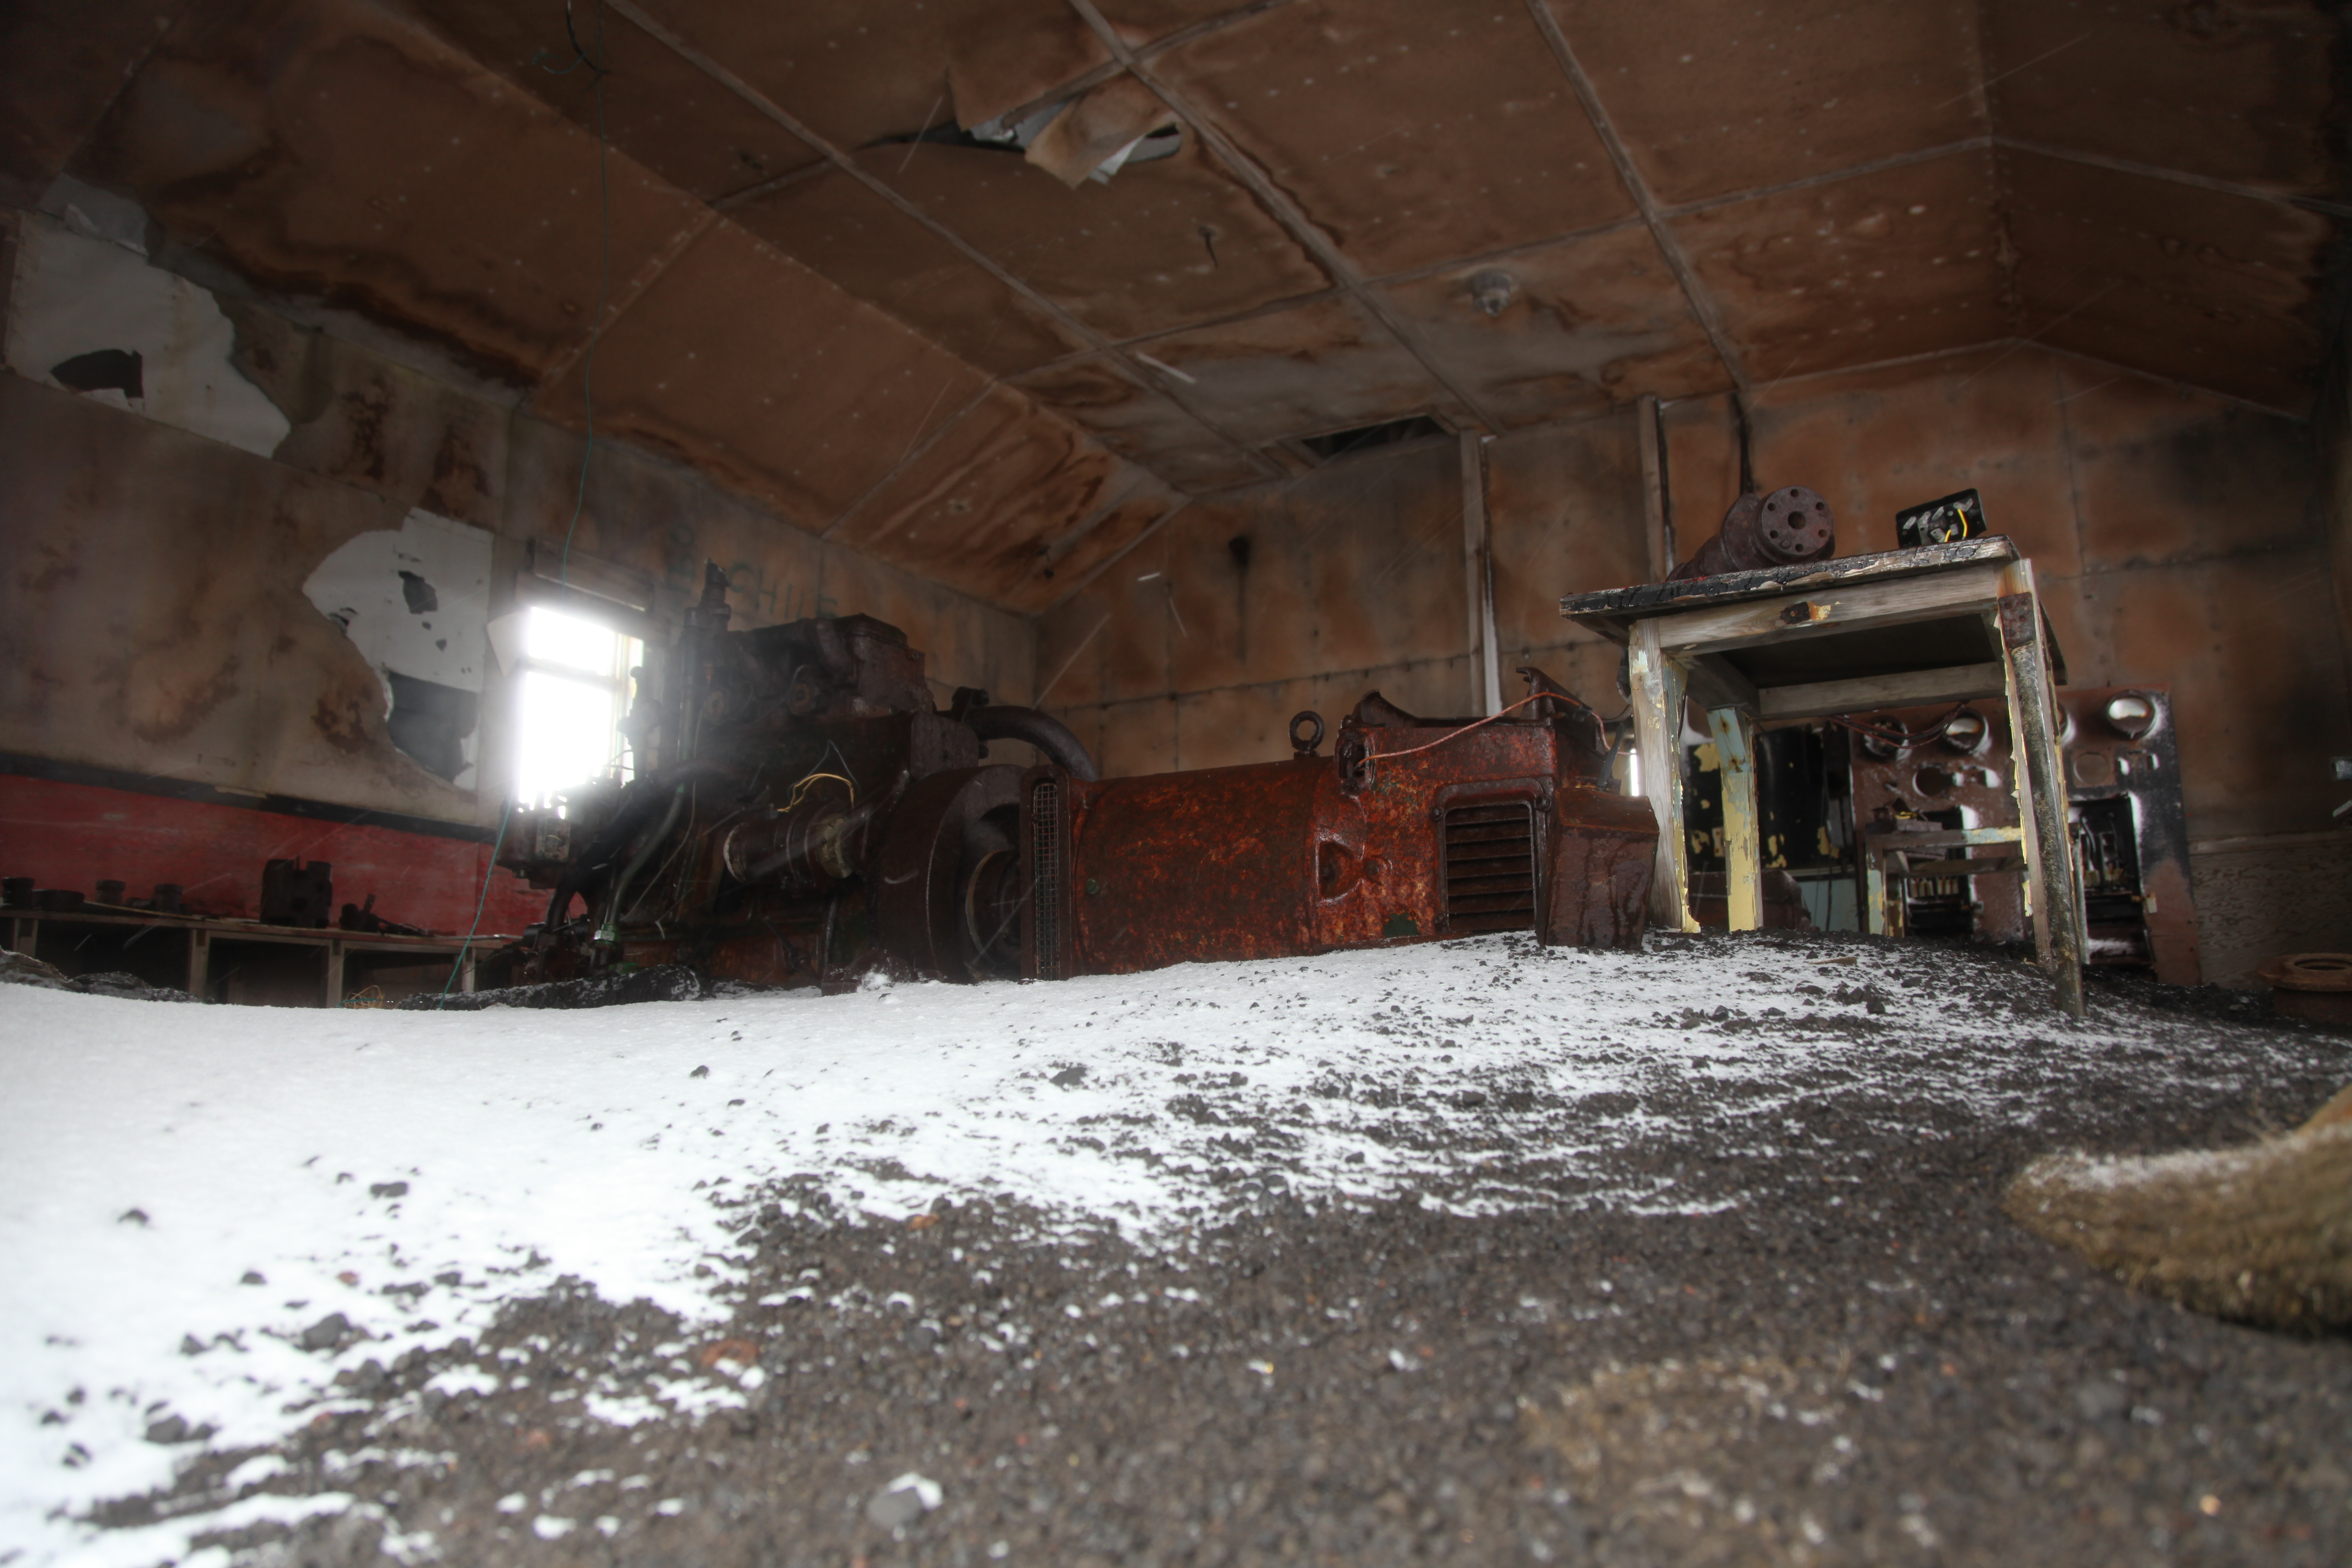 S 60 >> File:Looking inside the abandoned research base at Whalers Bay, Deception Island (6023707835 ...